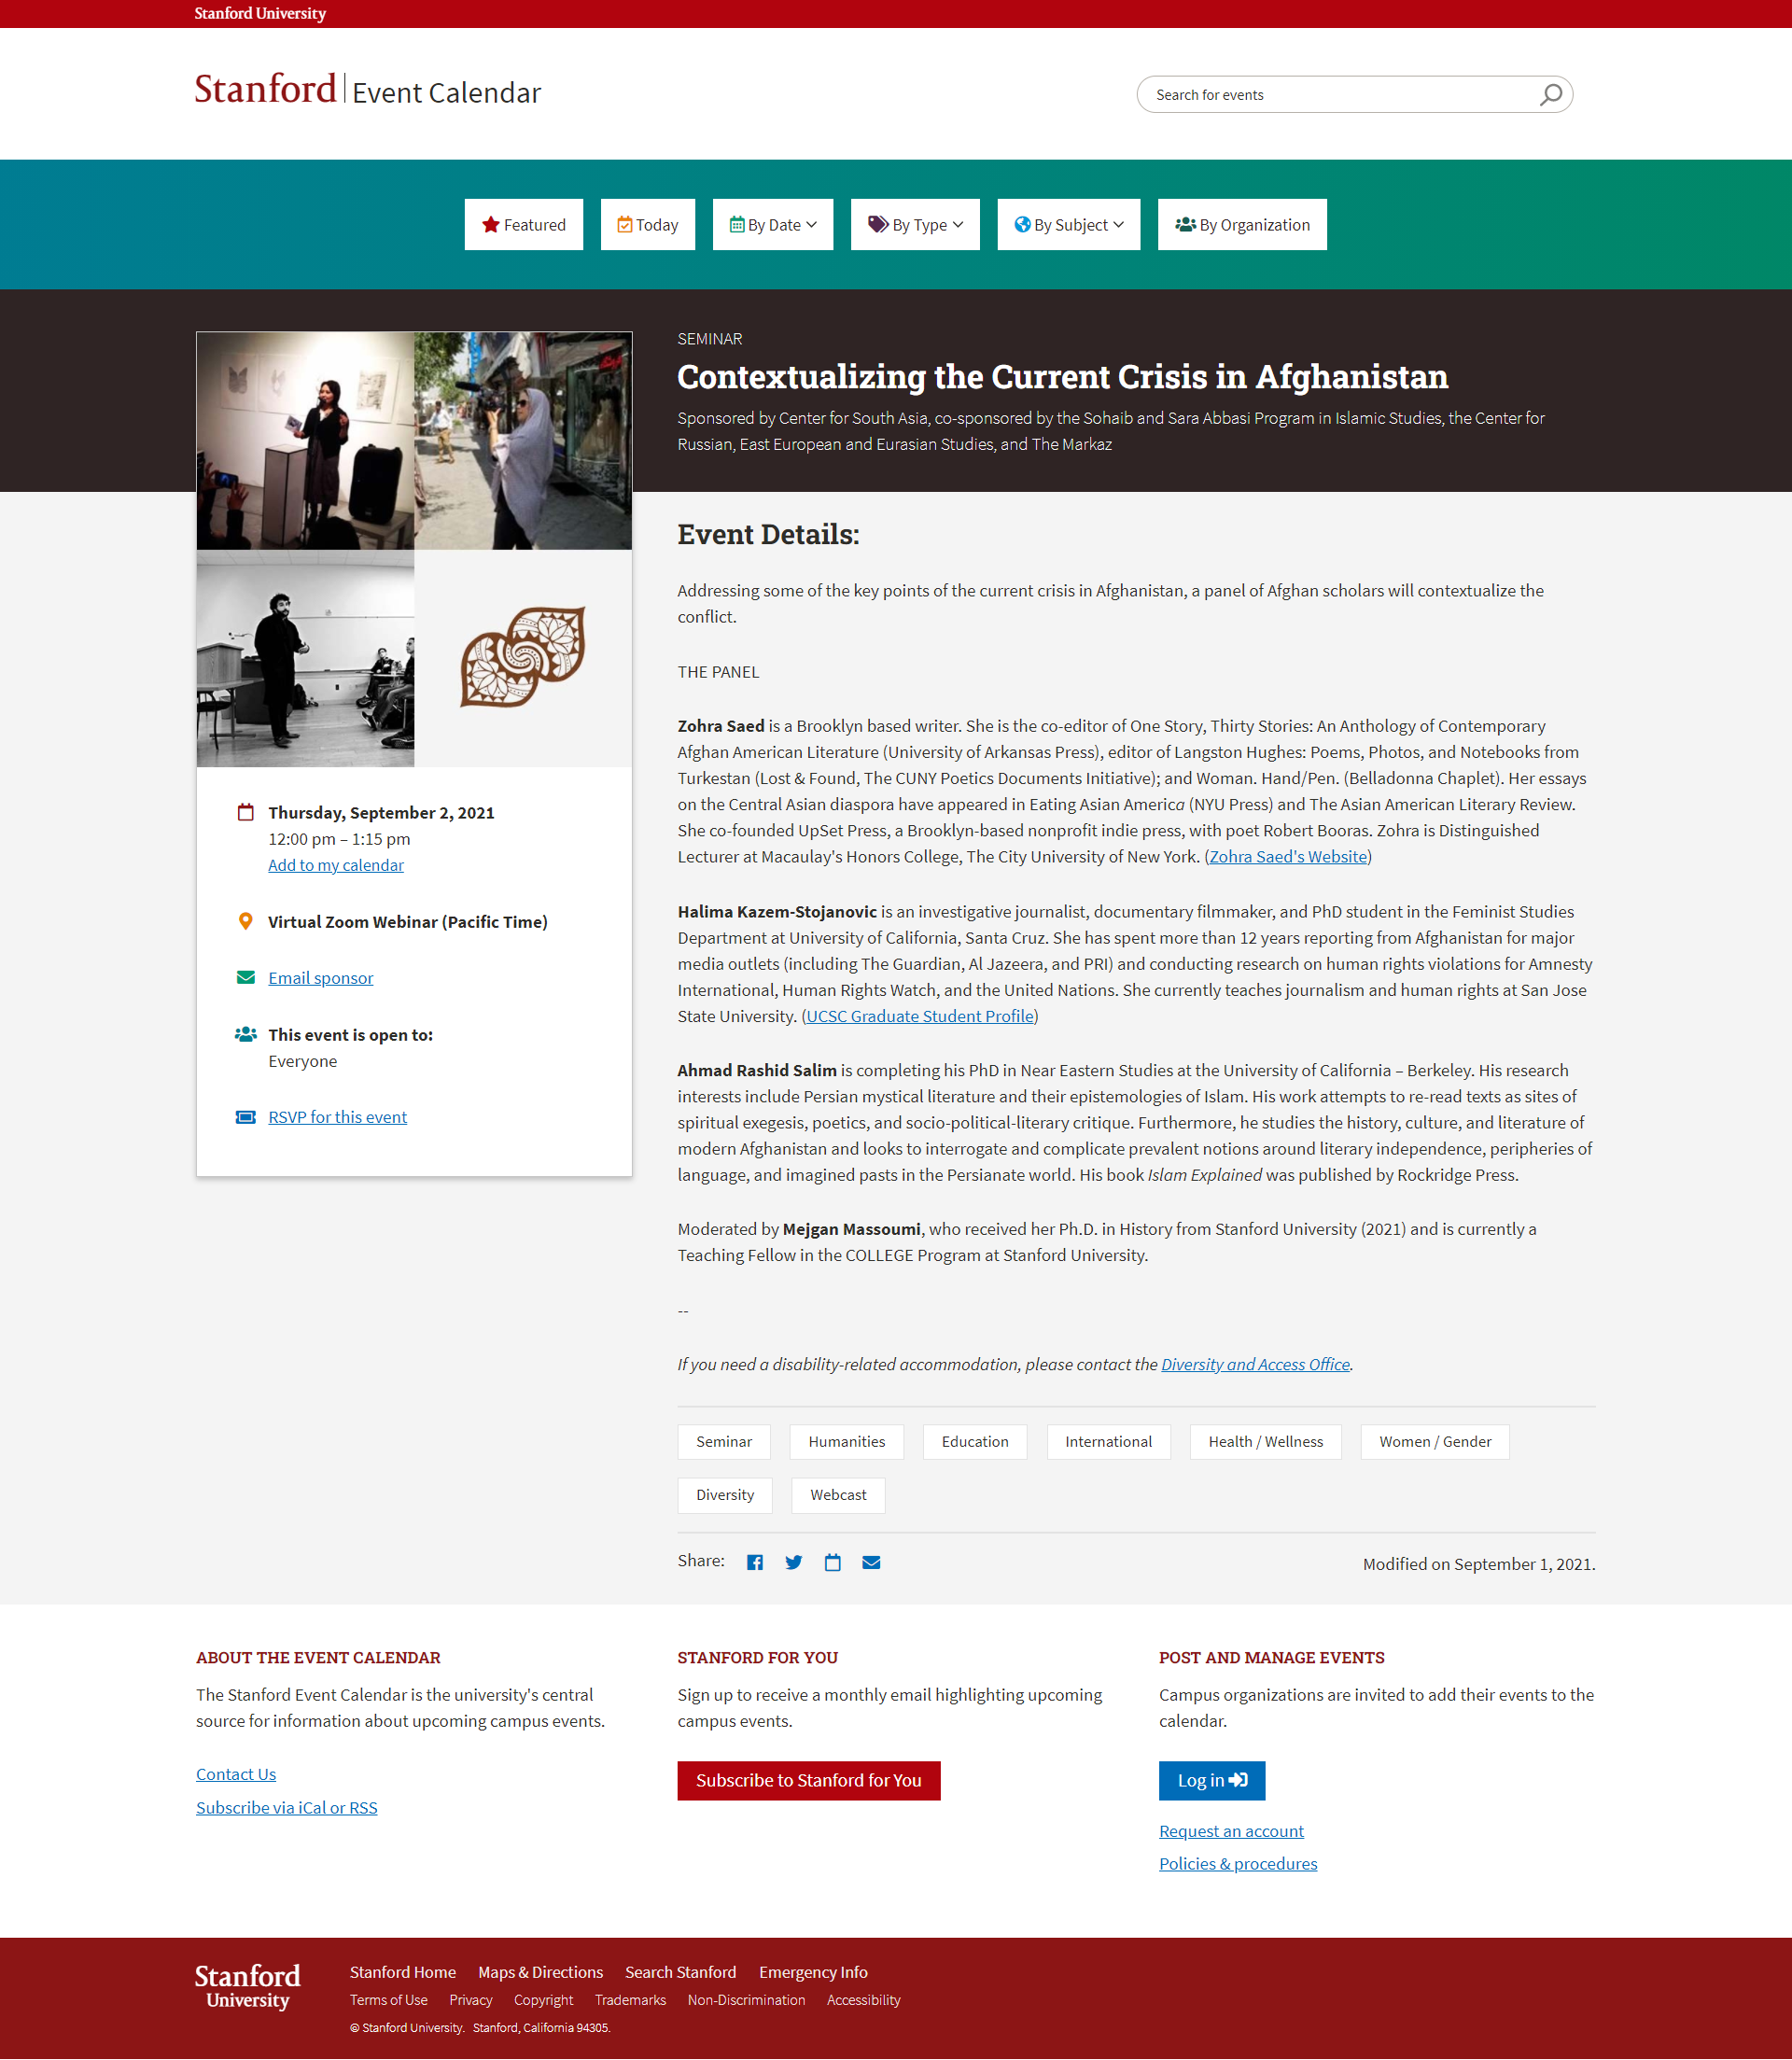 Stanford University Web page example